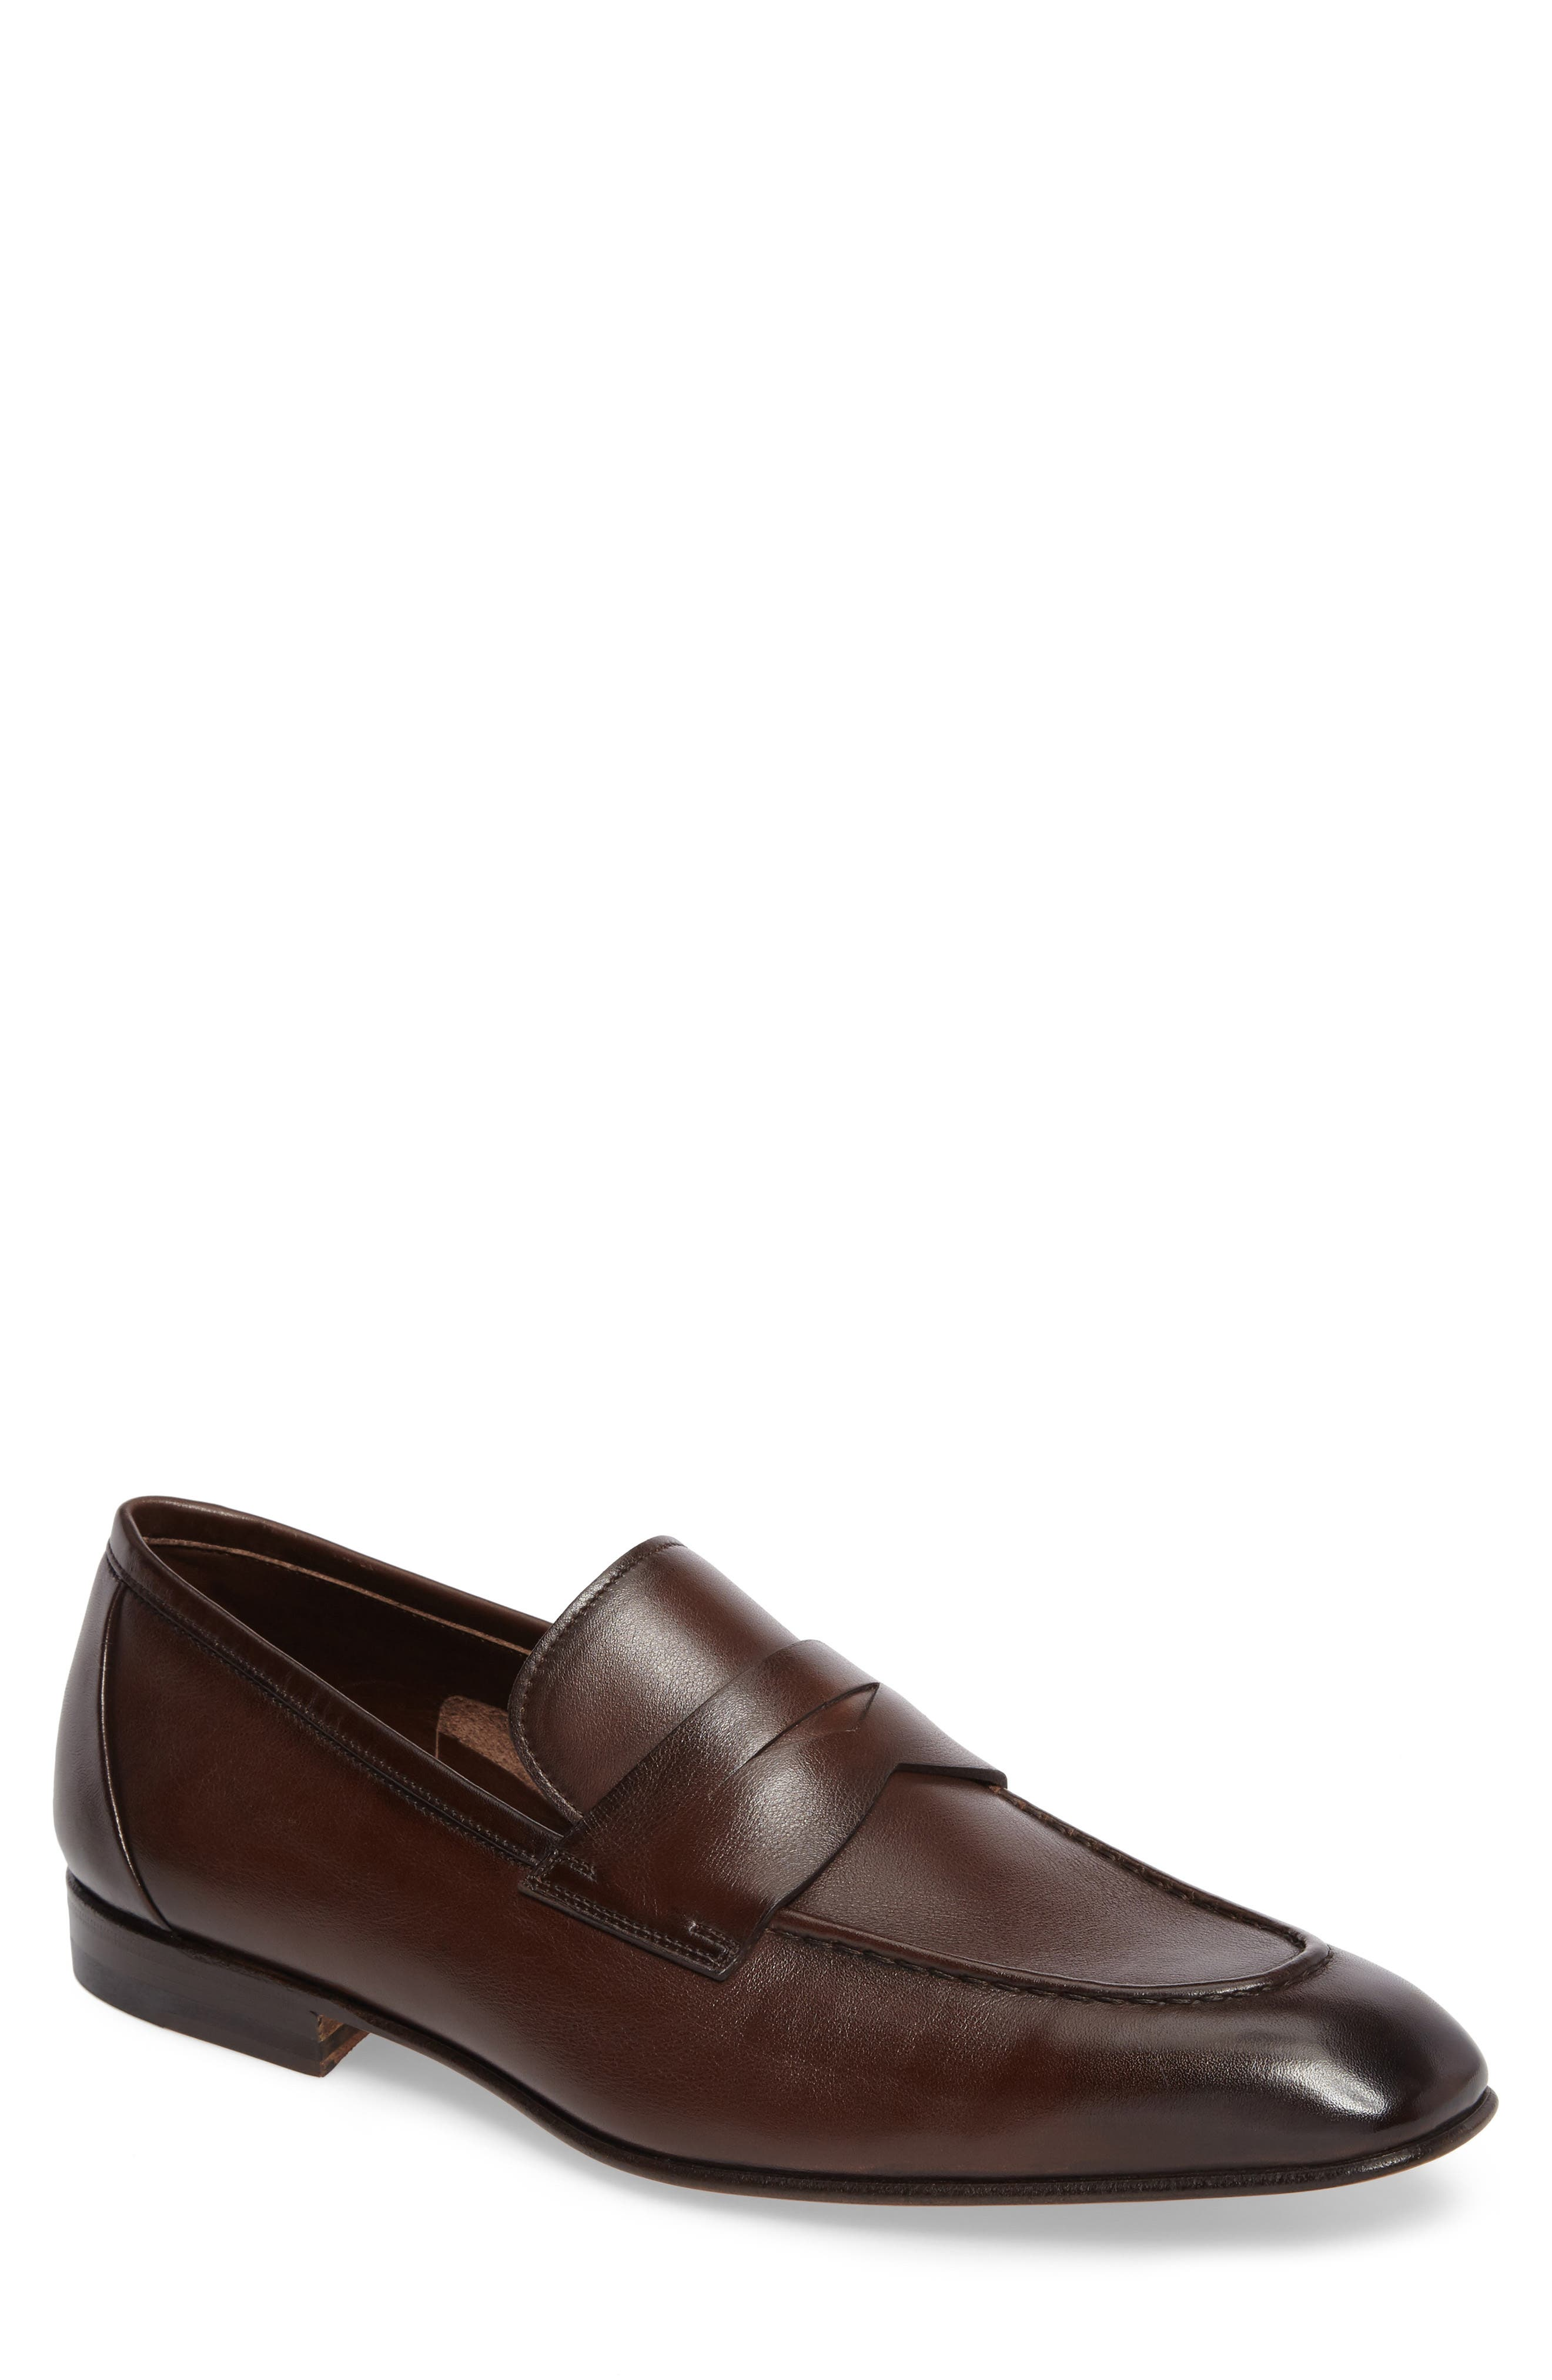 SANTONI, Gannon Penny Loafer, Main thumbnail 1, color, BROWN